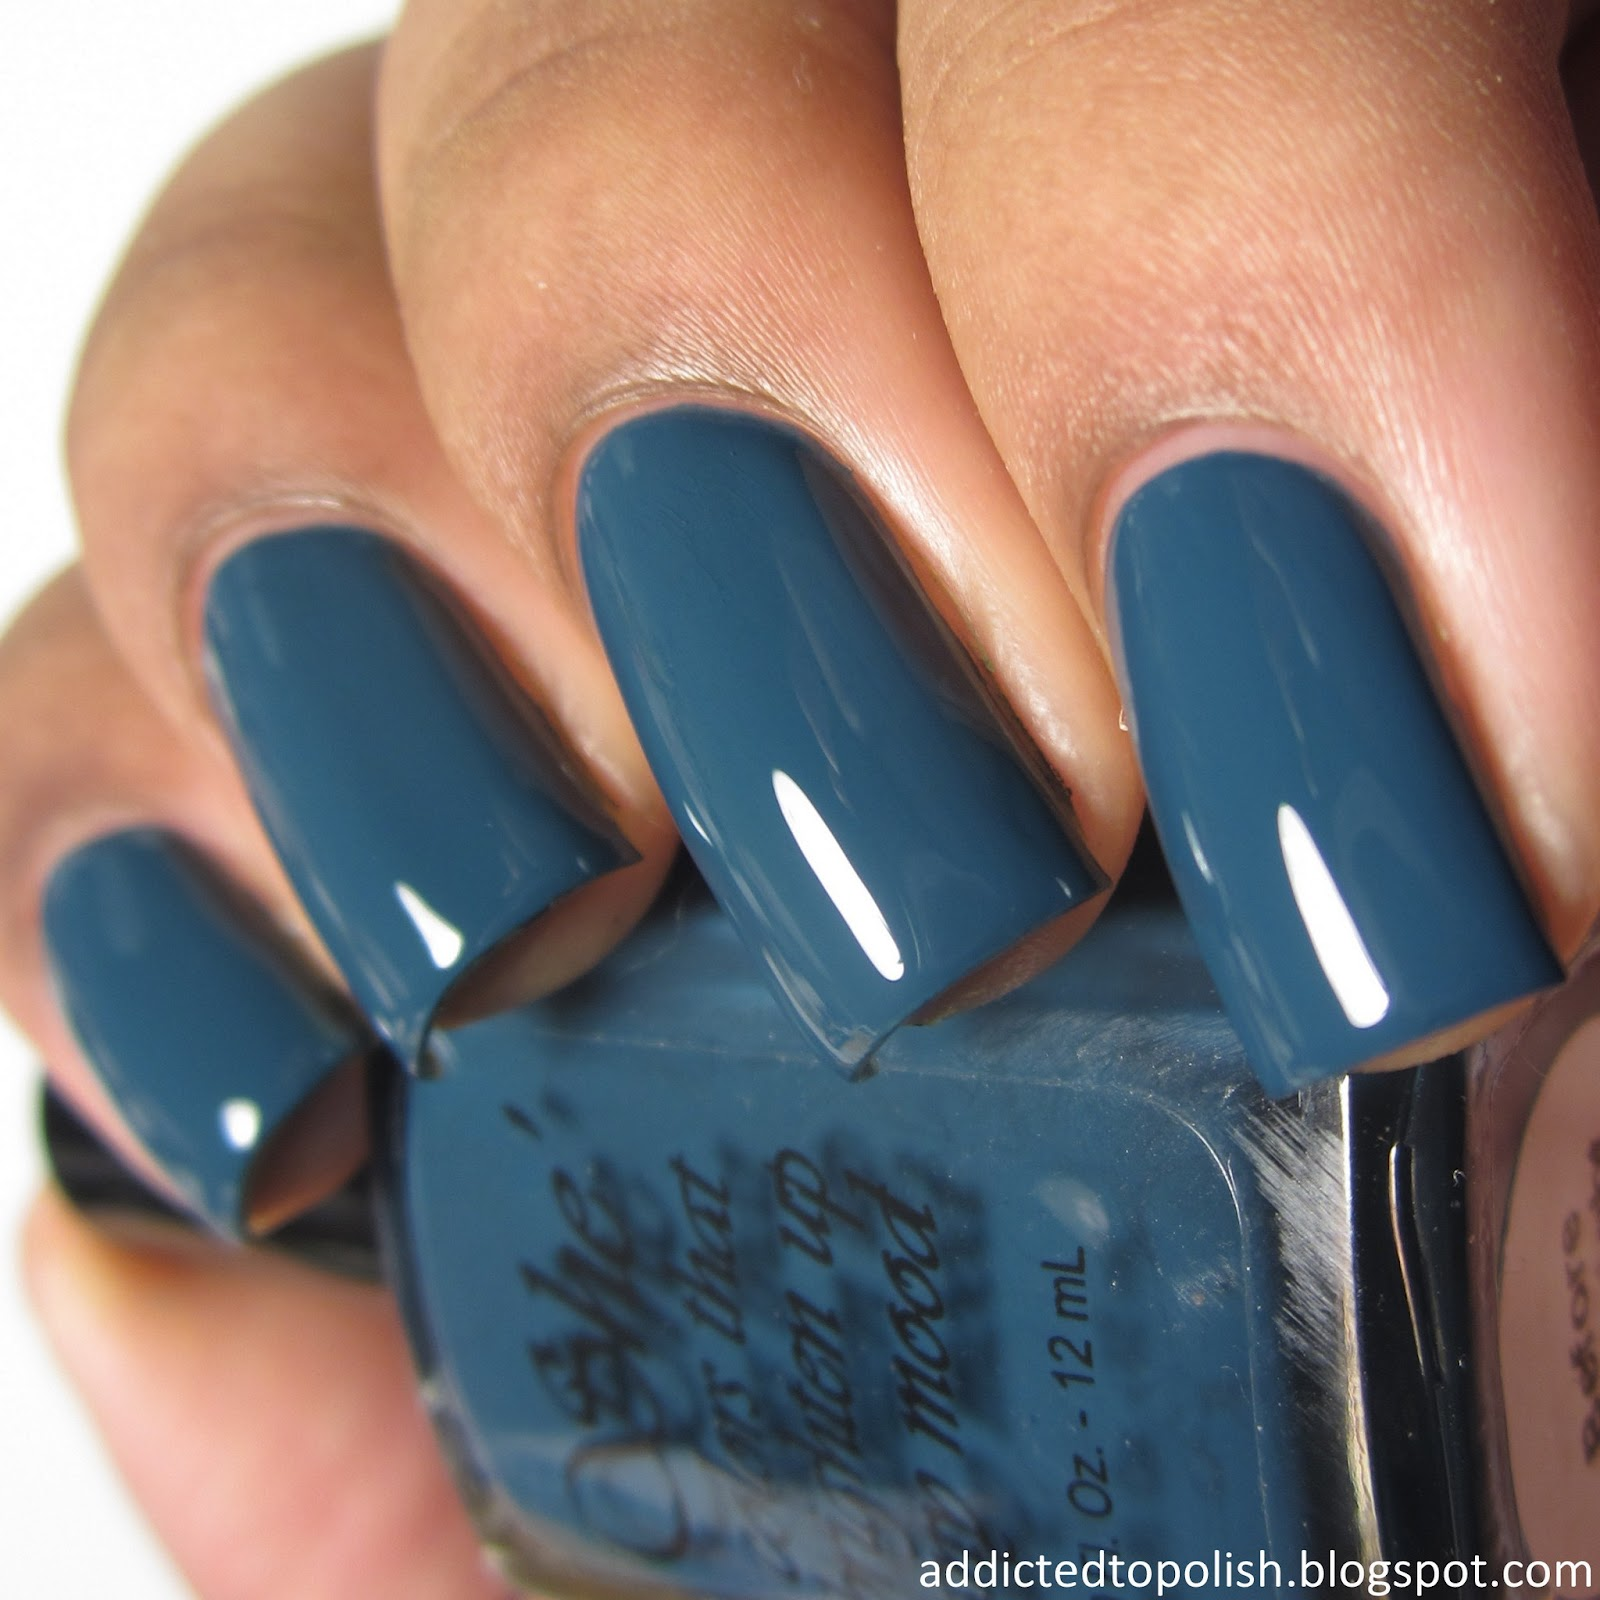 Addicted to Polish: She\' Nail Polish Swatches and Review